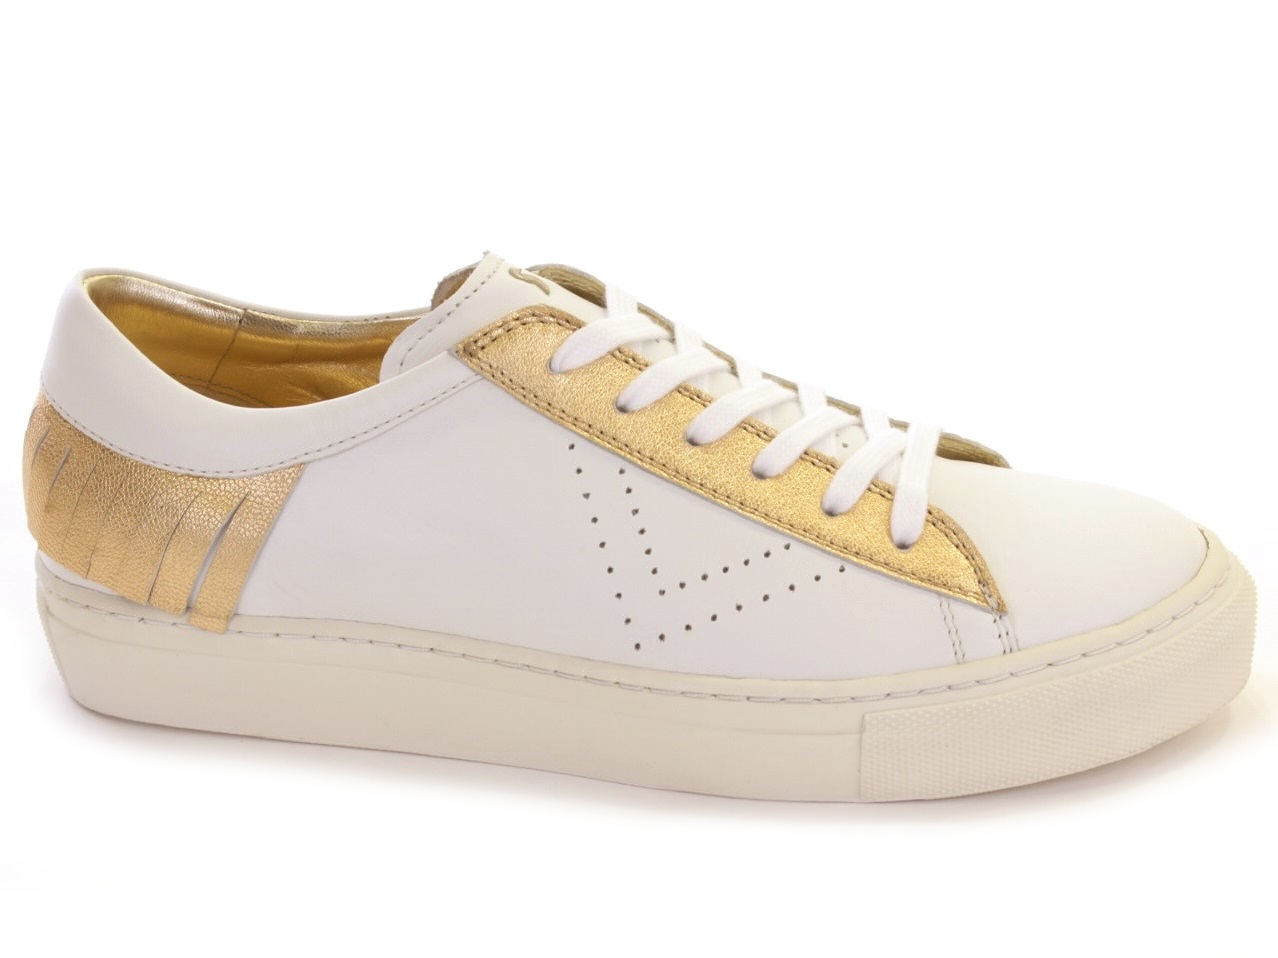 Sneakers and Espadrilles Perks - 182 PTS0591